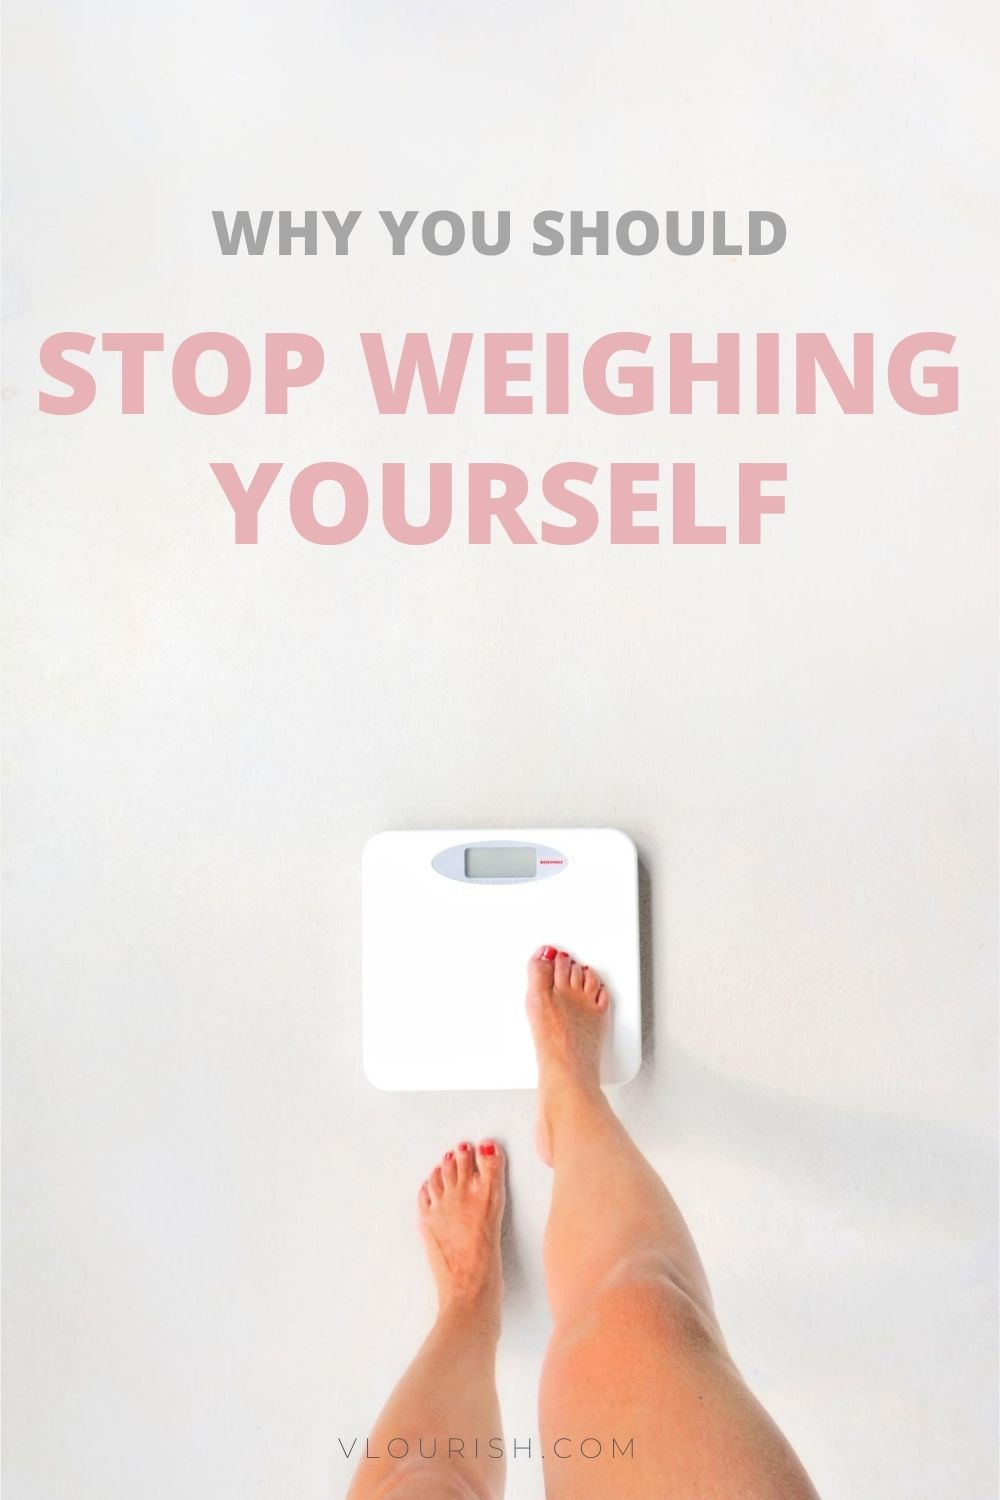 Why You Should Stop Weighing Yourself